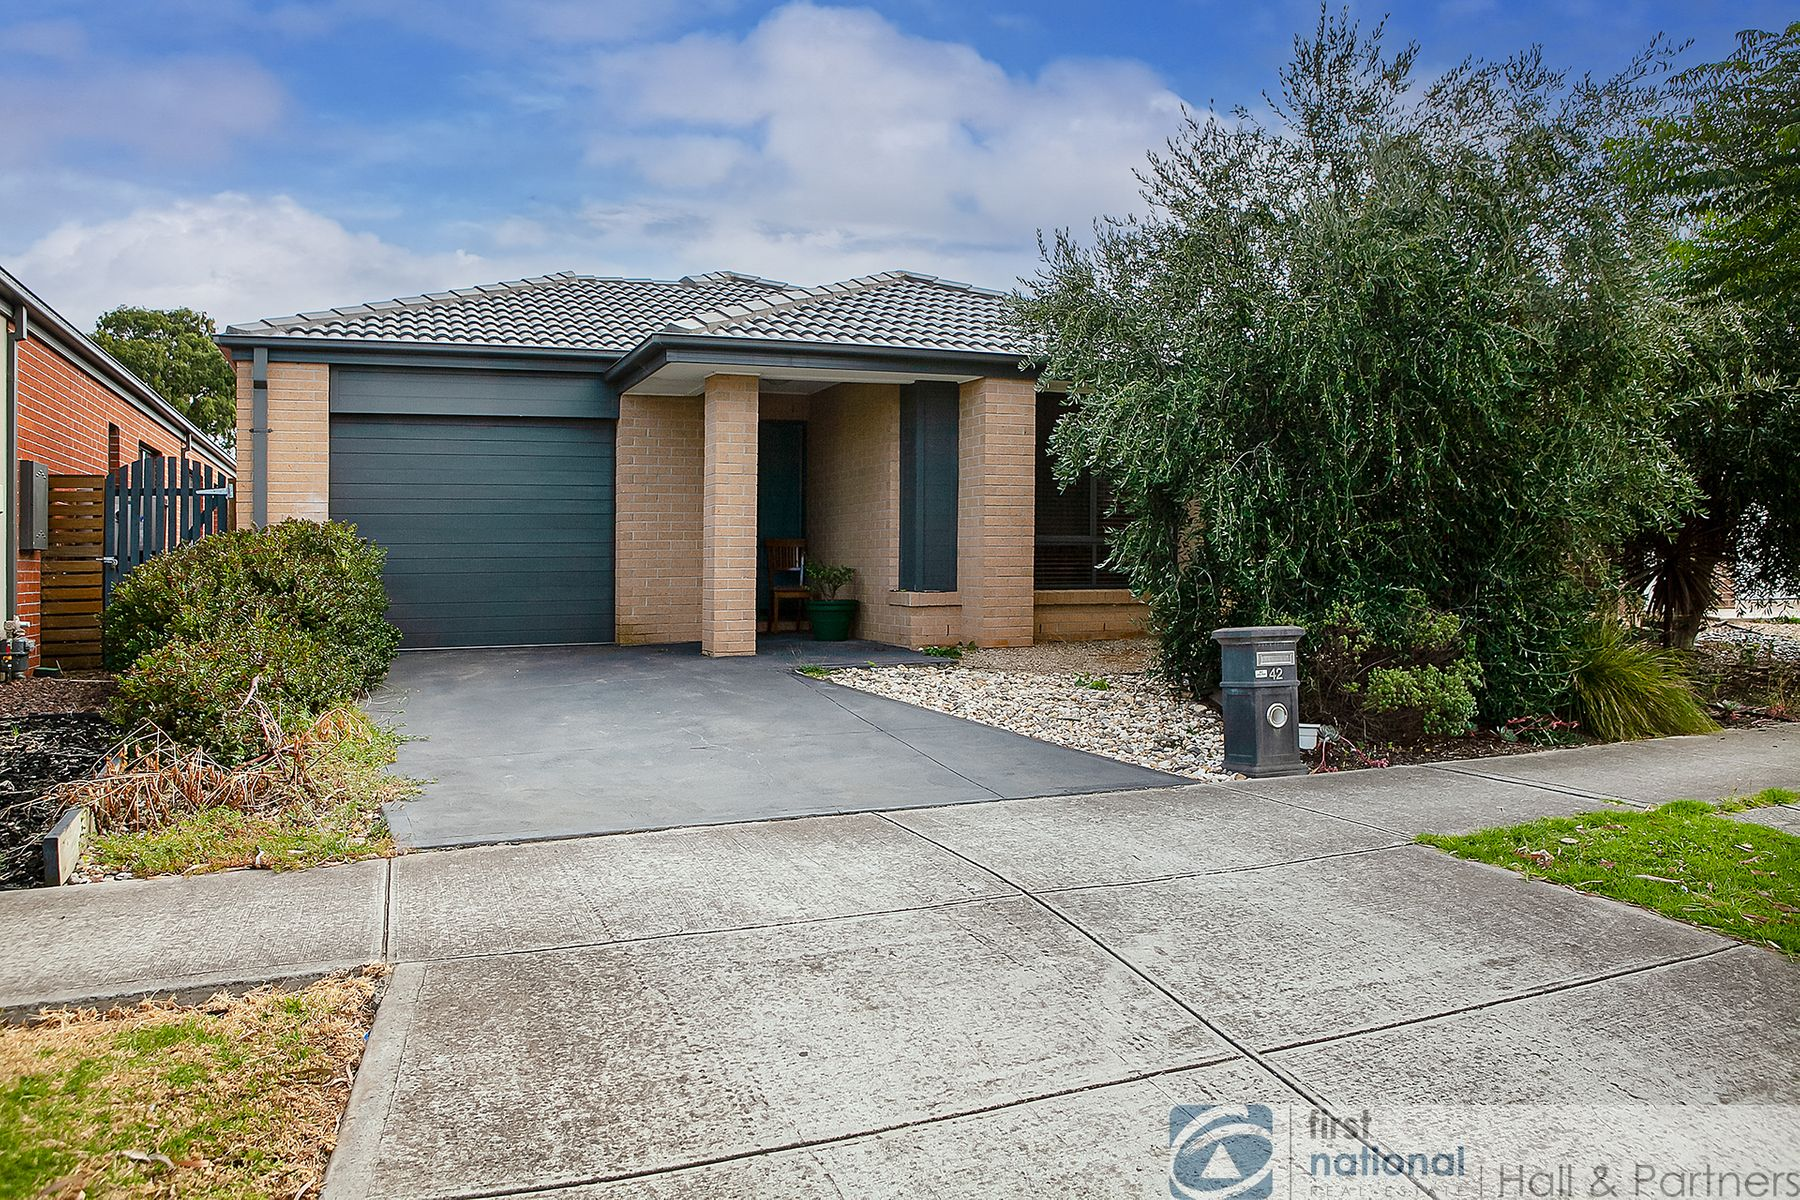 42 Fitzwilliam Drive, Doreen, VIC 3754